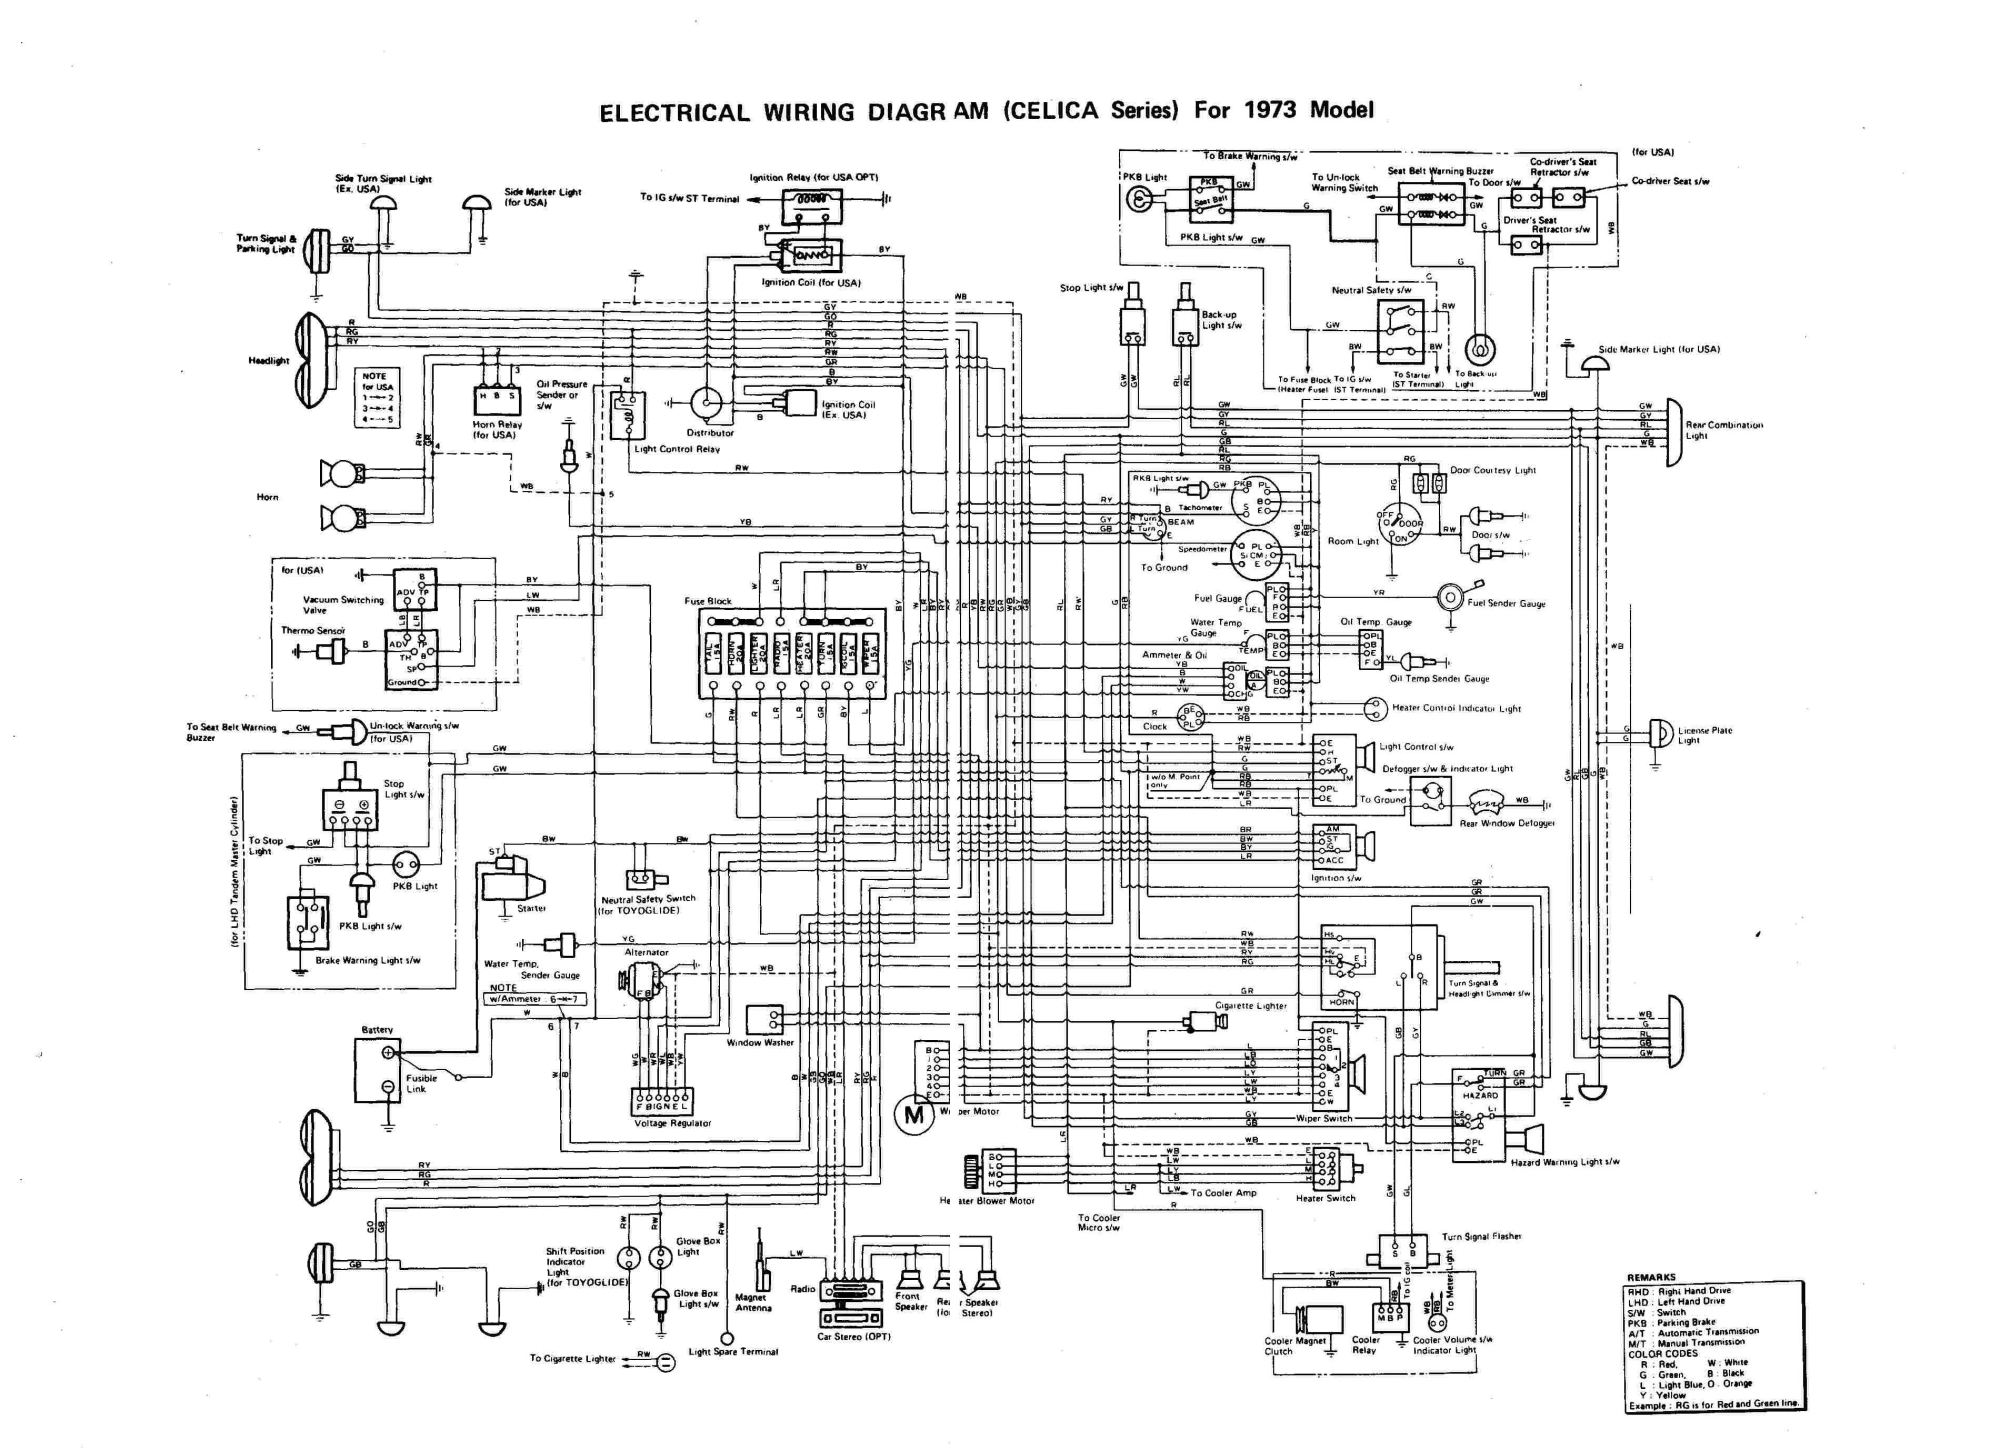 hight resolution of 2000 celica wiring diagram wiring diagram for you celica exhaust system diagram 2000 celica wiring diagram